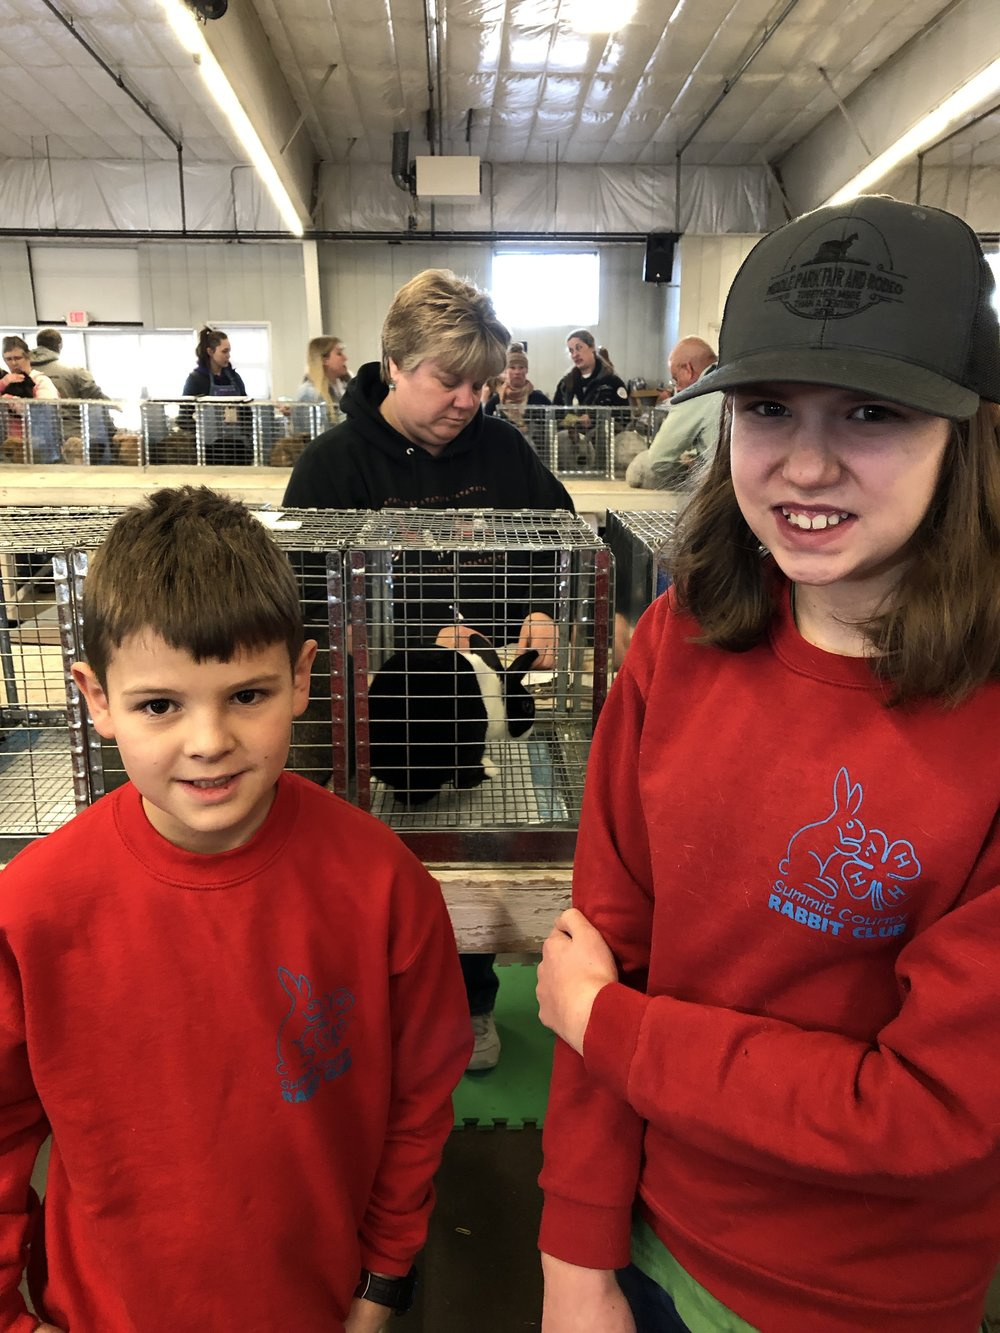 This photo is from a  while ago, but both Jacob and Zaria are enjoying their 4H rabbit husbandry club.